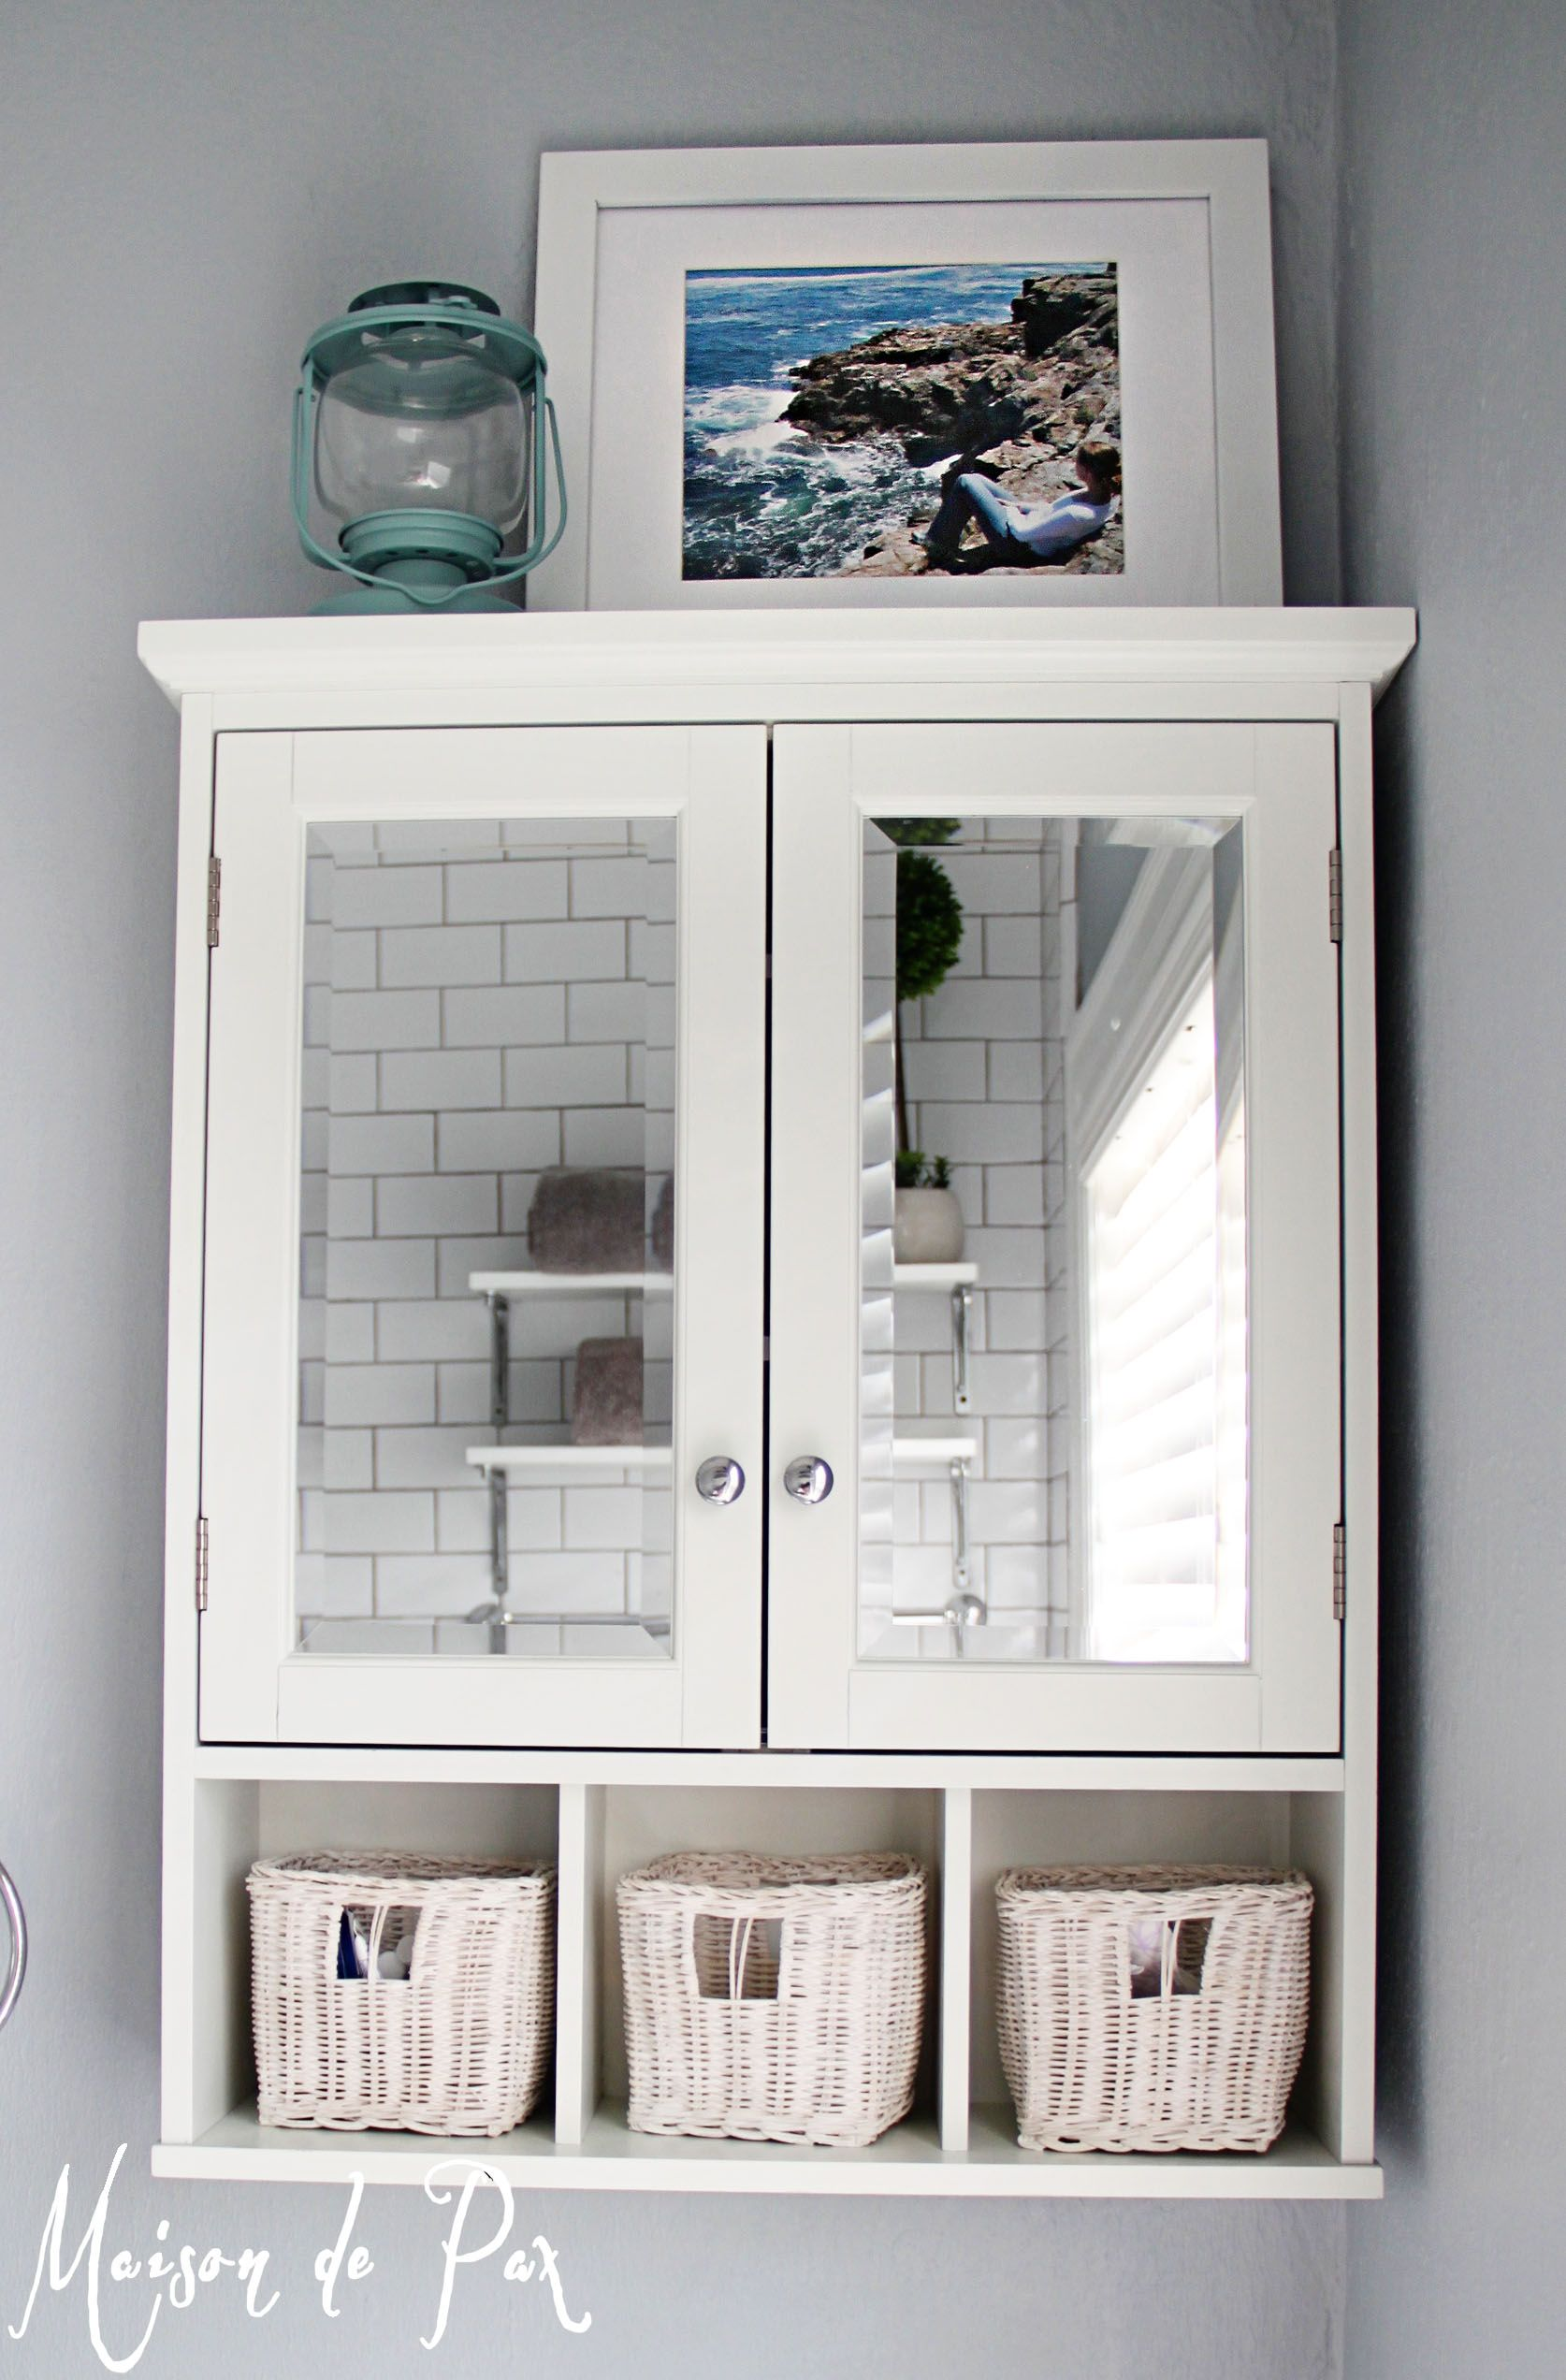 10 Tips For Designing A Small Bathroom   Maison De Pax. White Medicine  CabinetBathroom ...